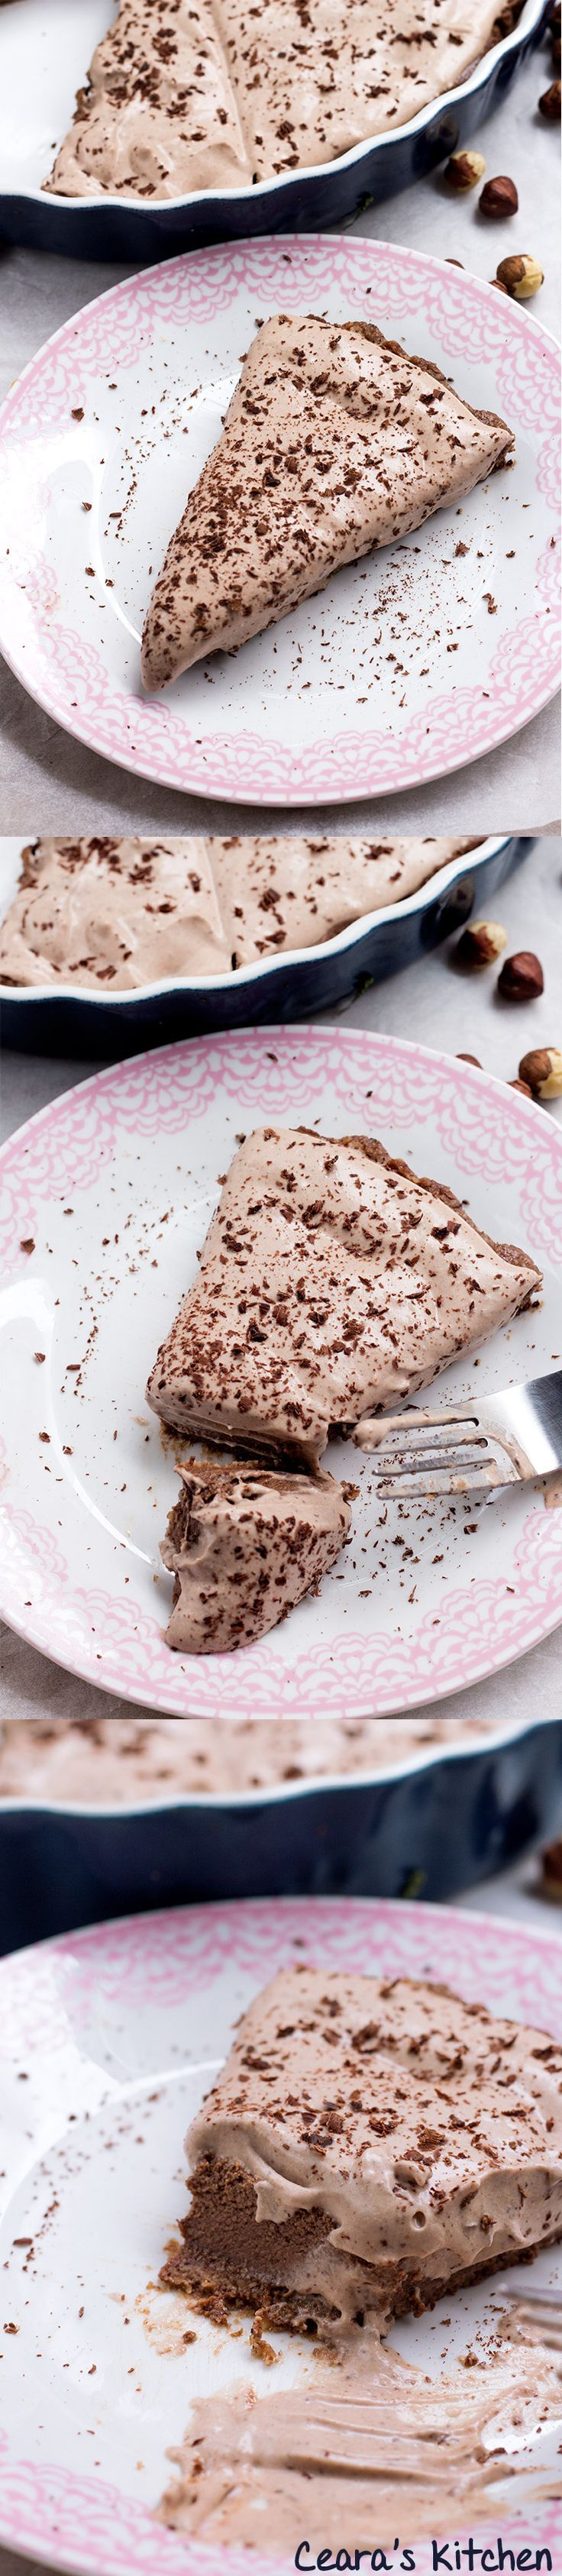 Vegan Chocolate Hazelnut Pie - Healthy No Bake Nutella Pie! This sounds so good and so complicated. Ooow